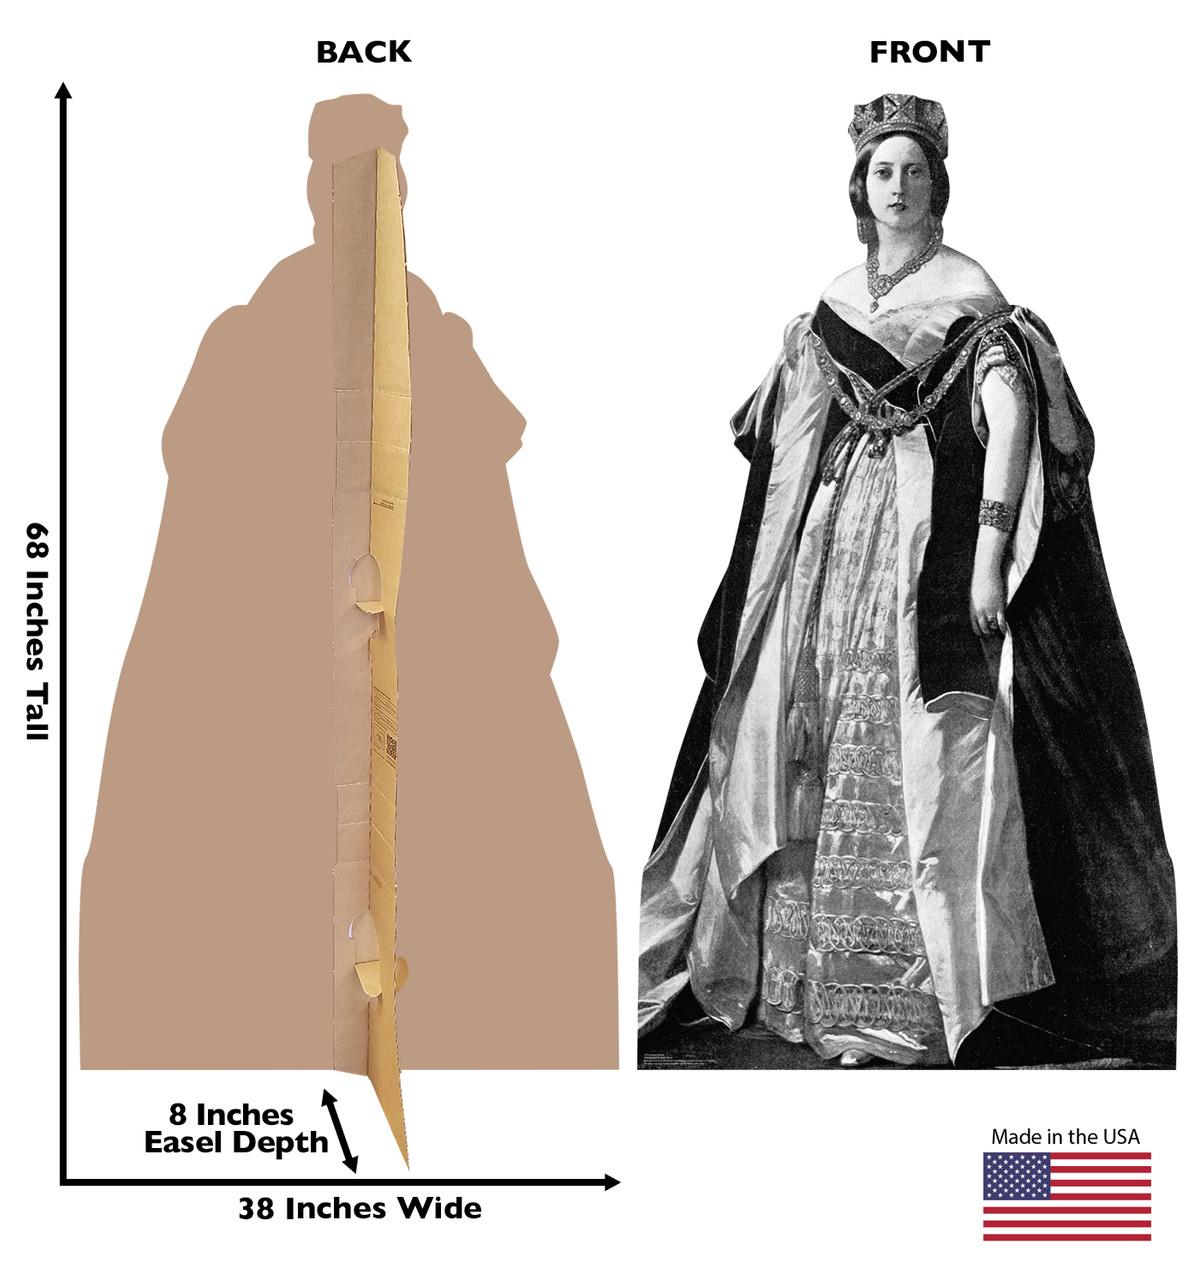 Life-size cardboard standee of Queen Victoria with back and front dimensions.